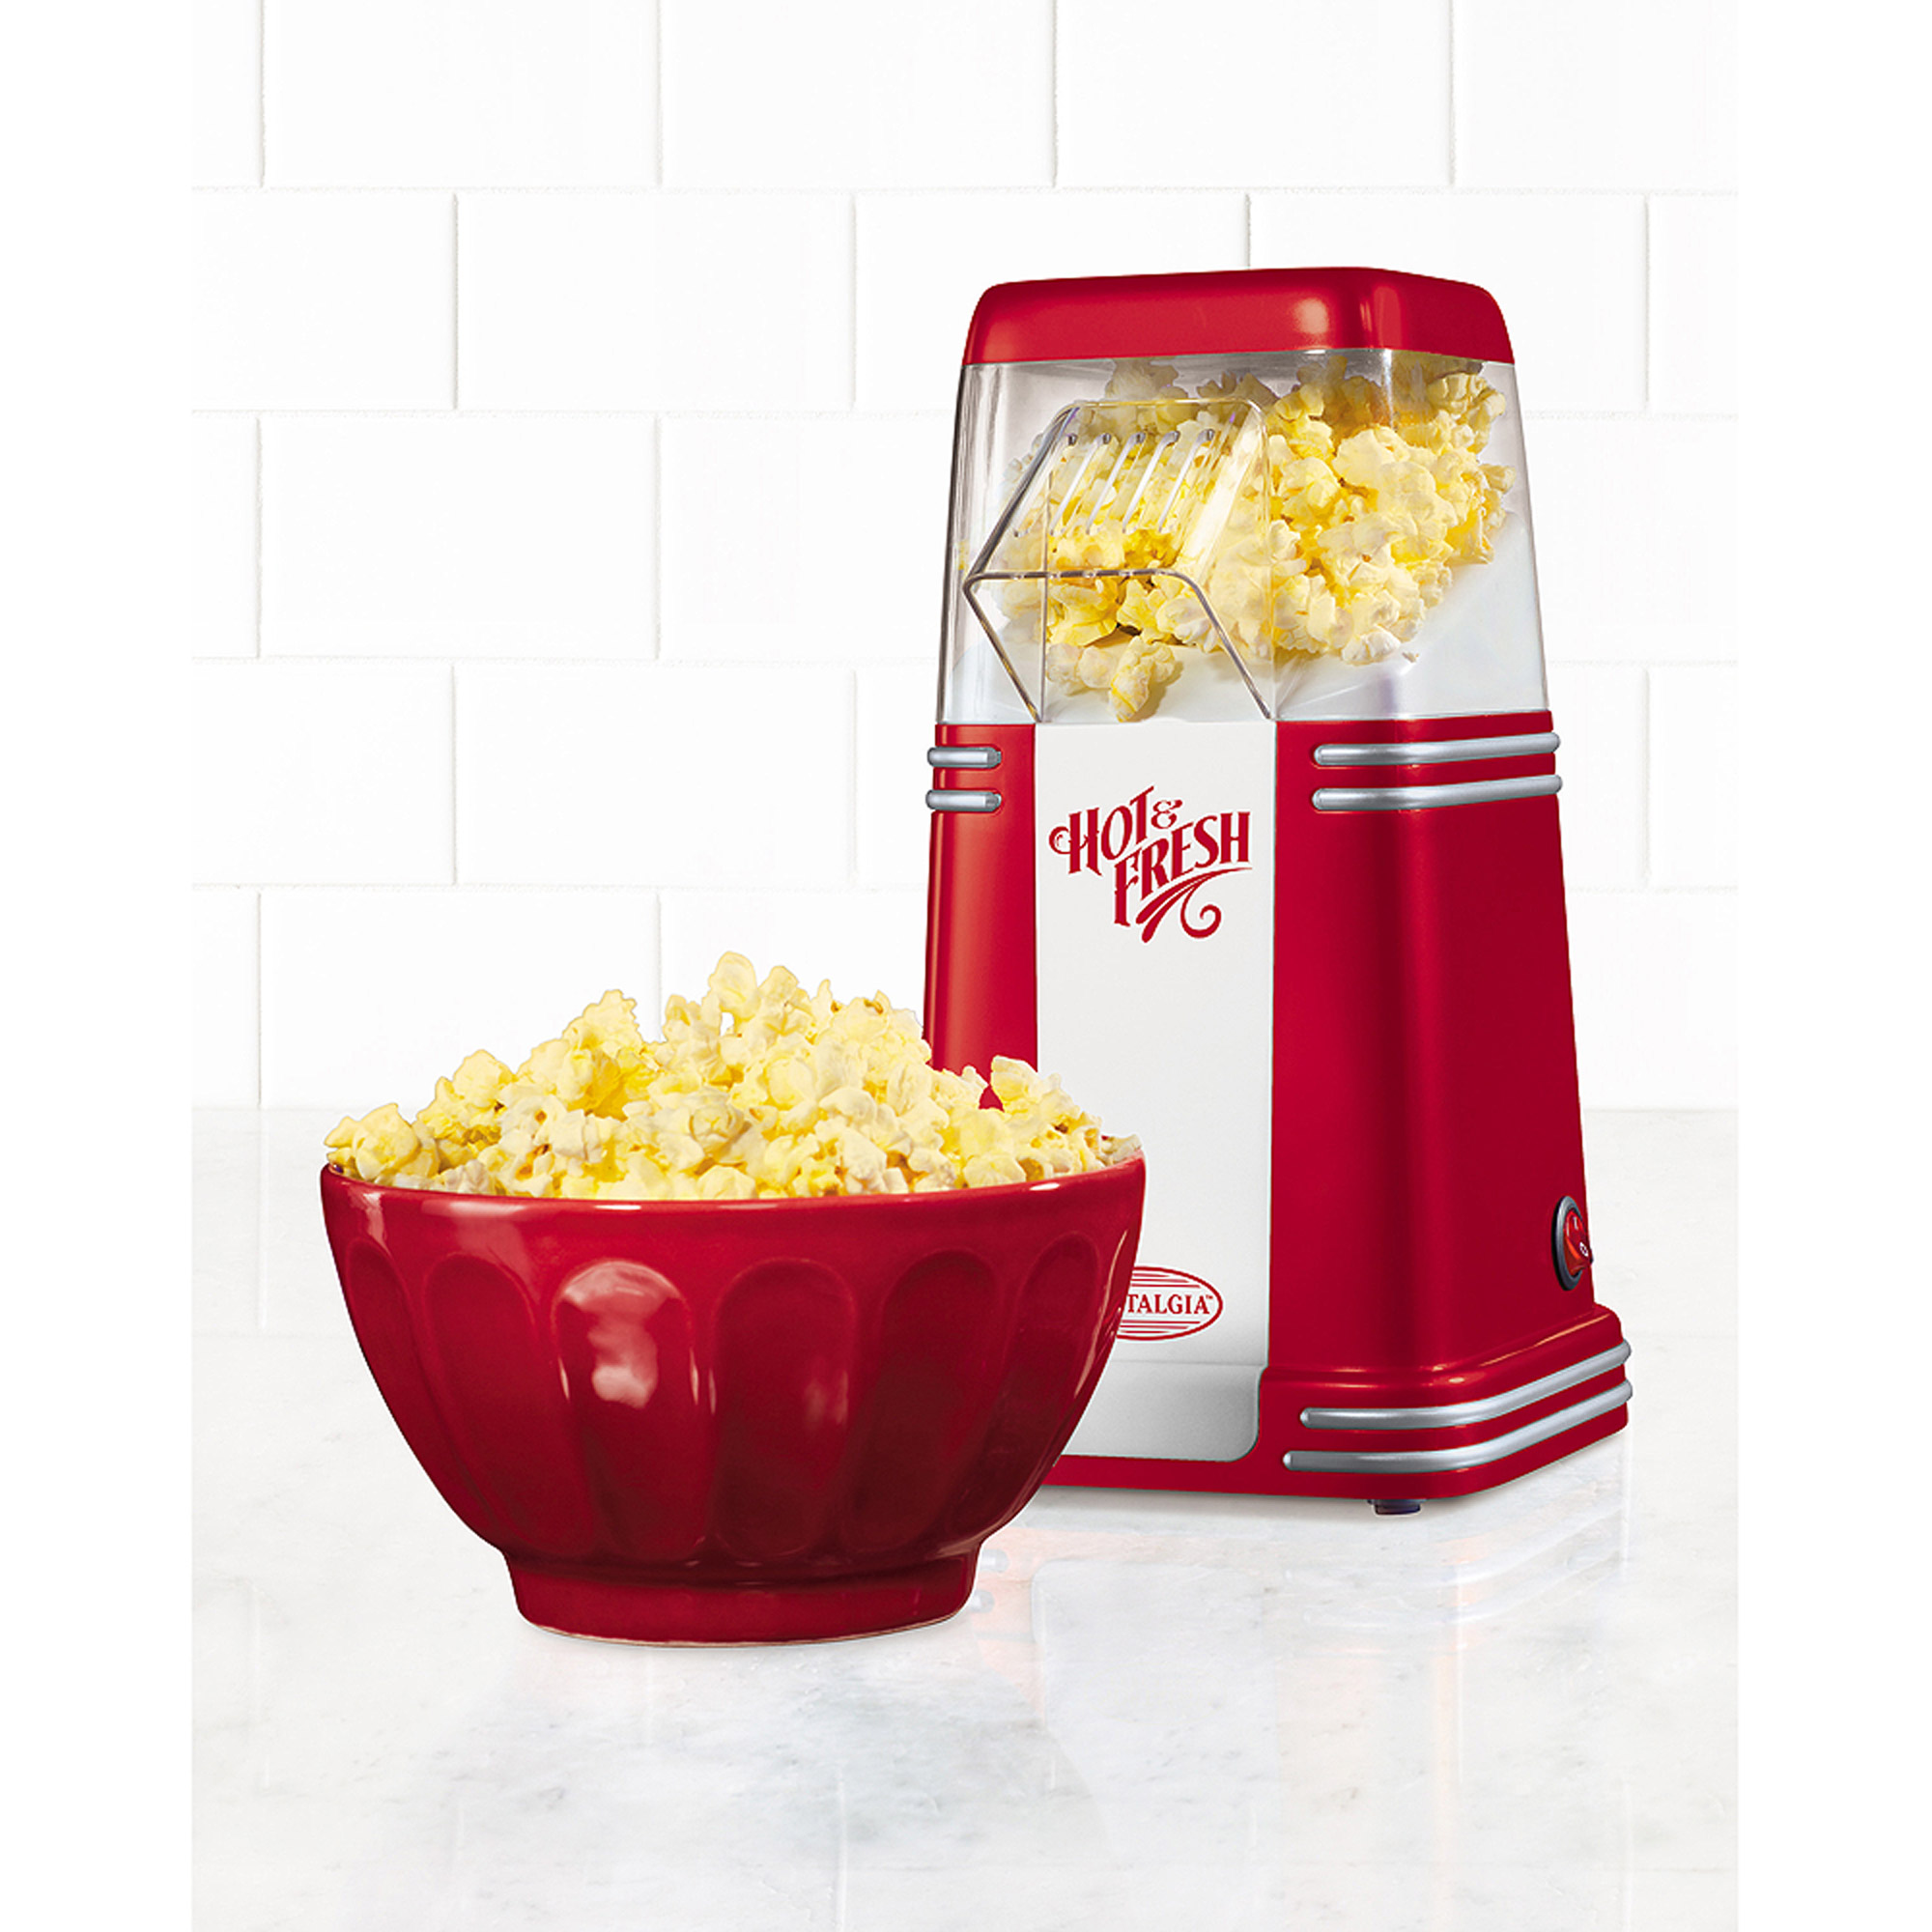 Nostalgia Mini Hot Air Popcorn Maker, Red